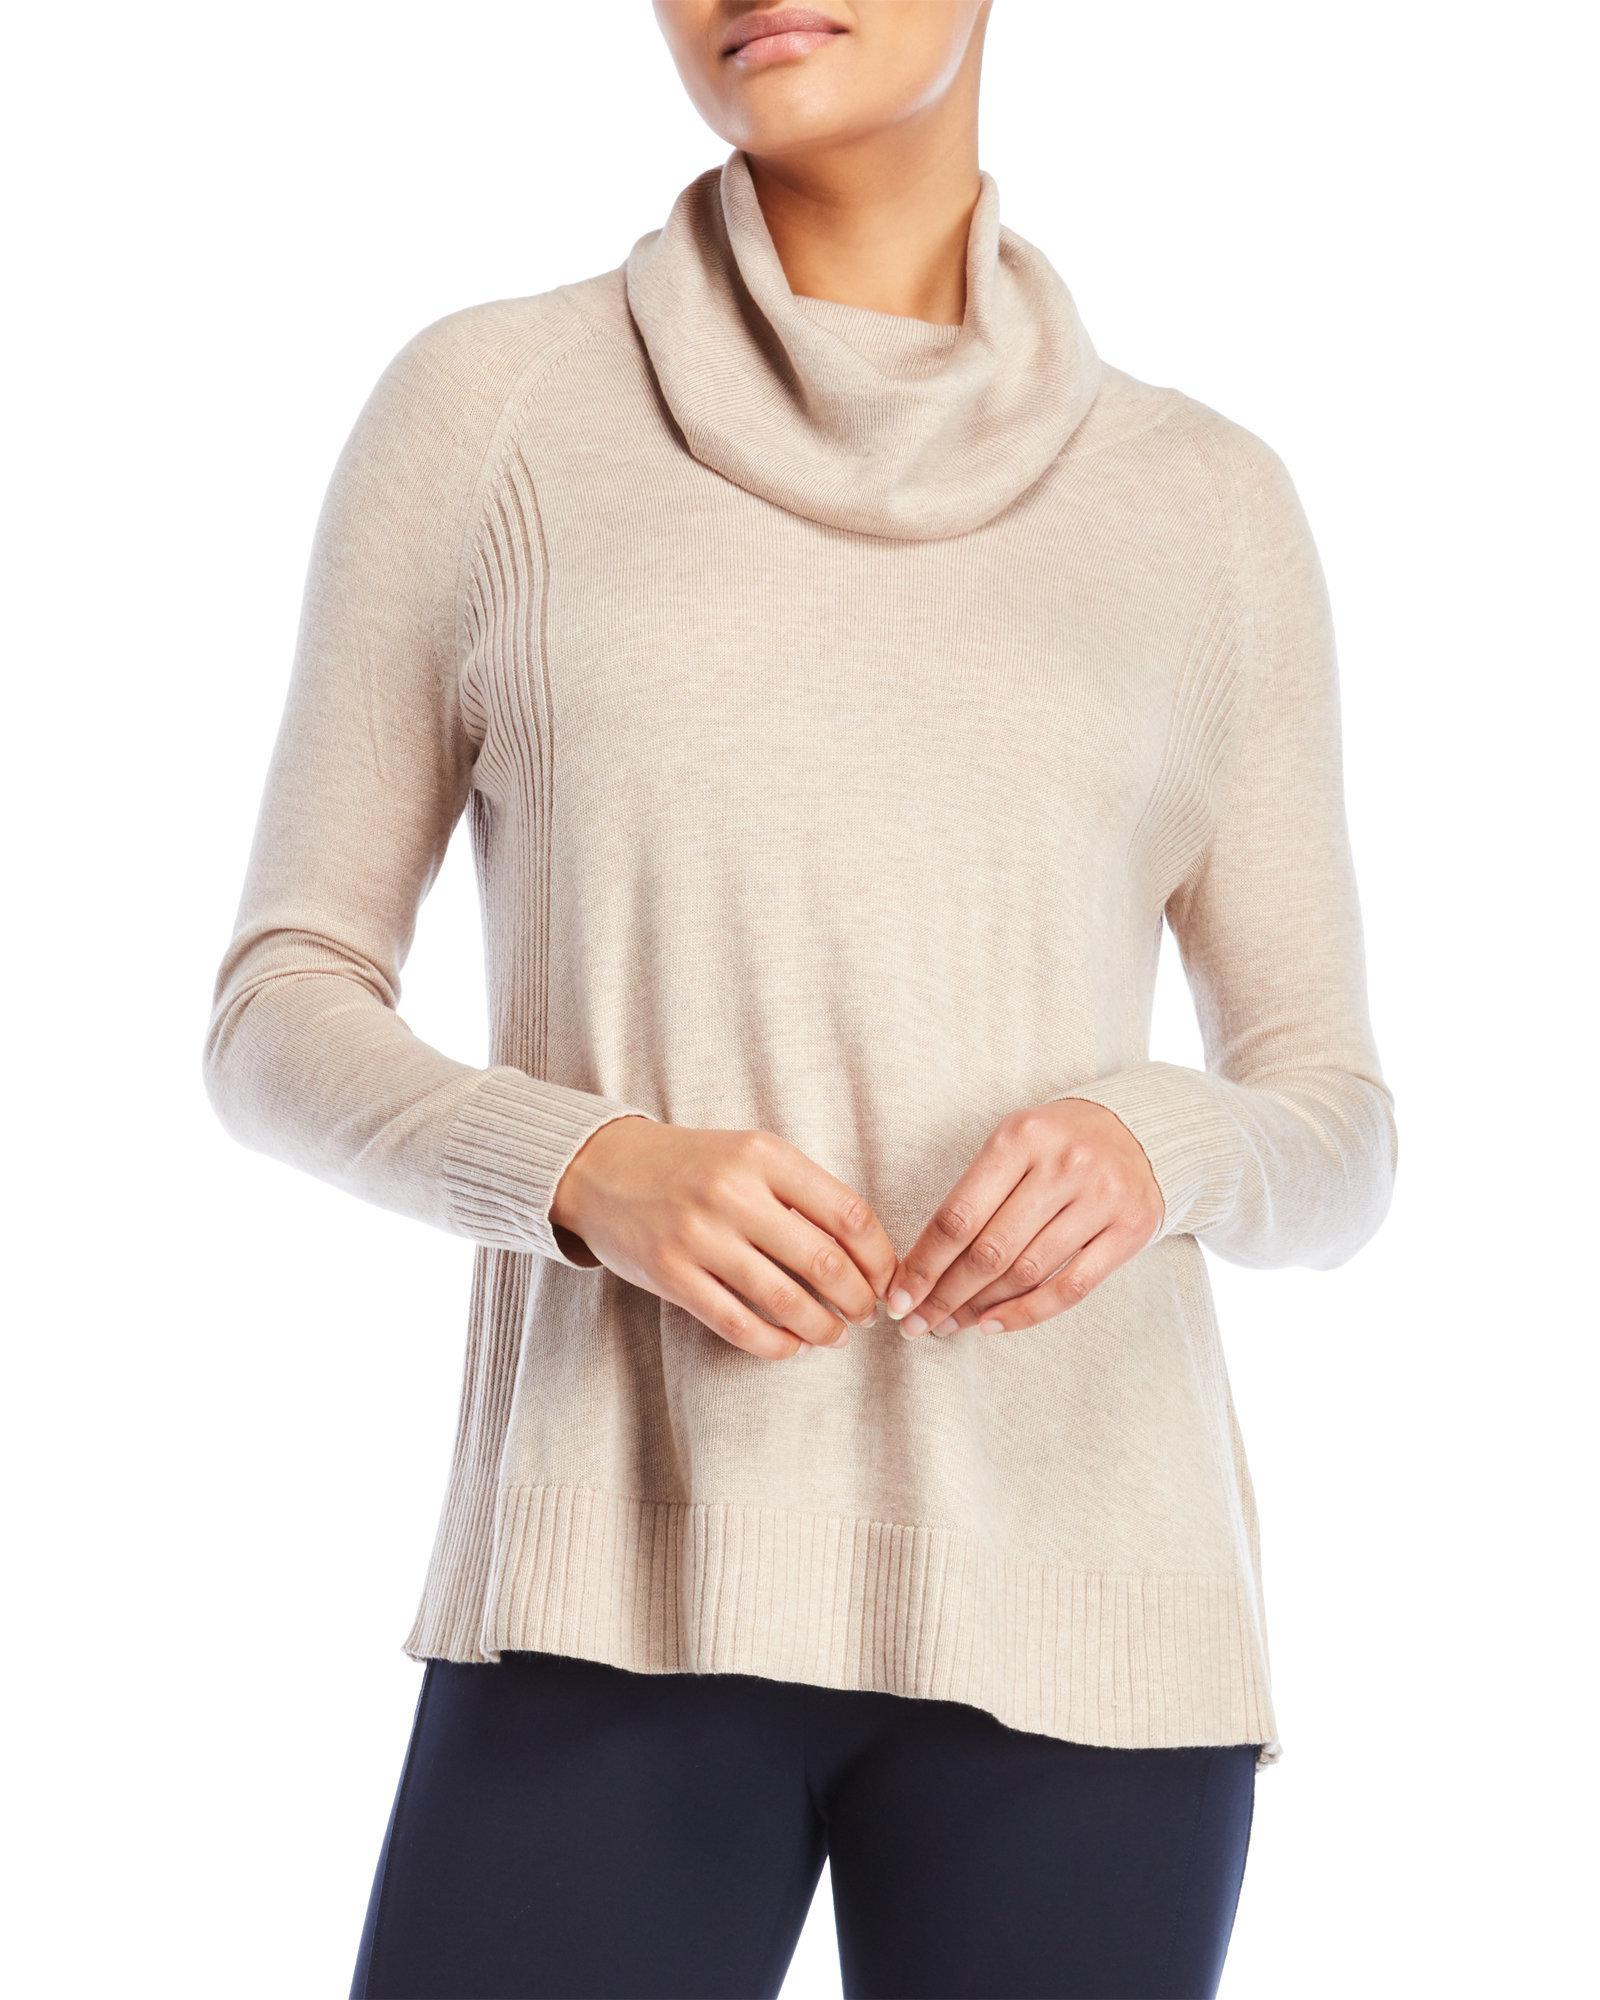 Premise studio Ribbed Cowl Neck Sweater in Natural | Lyst